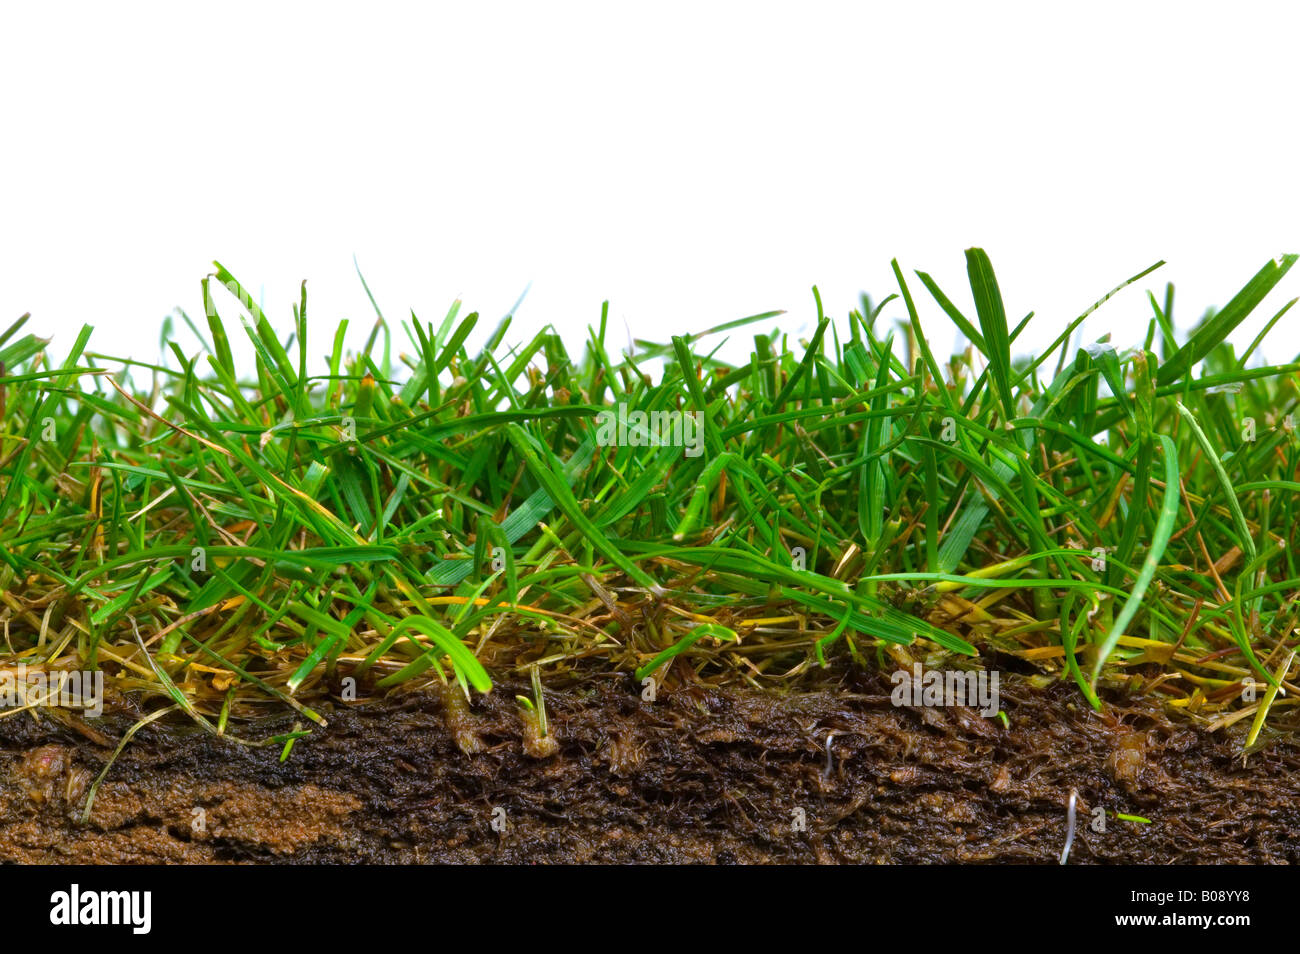 Cross section from a piece of turf shot against a white background - Stock Image